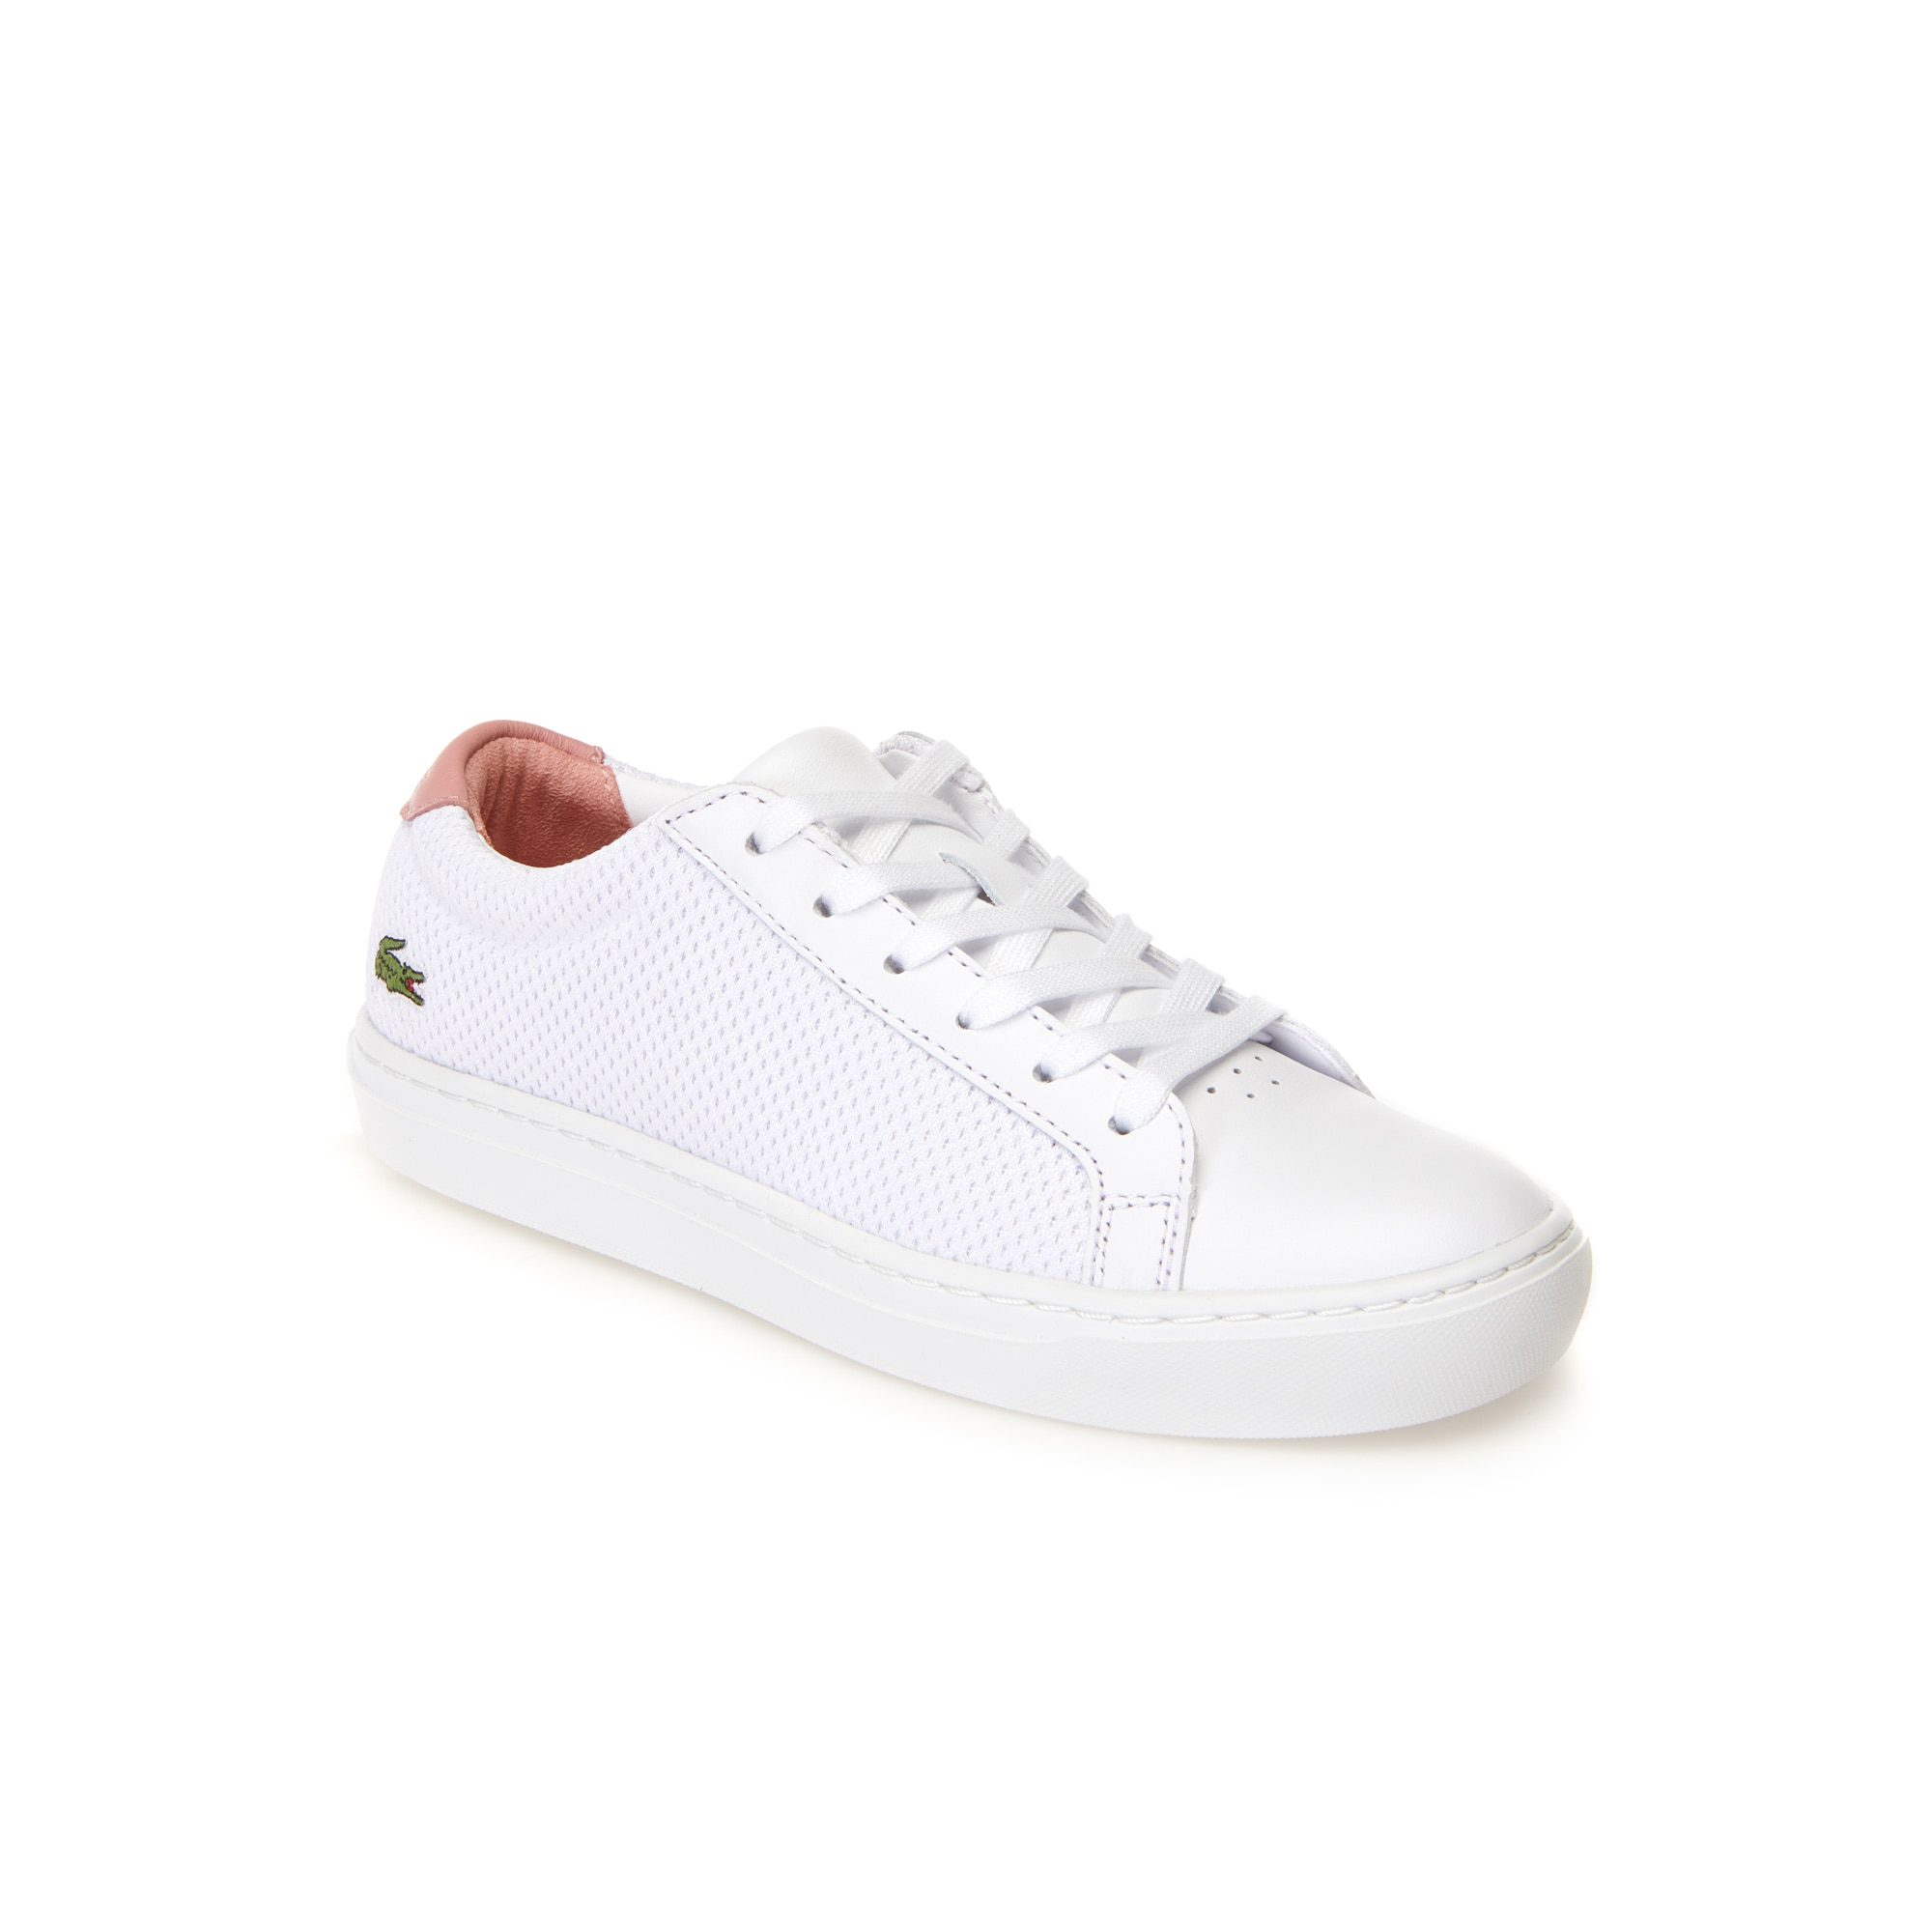 Women's L.12.12 Light-WT Textile and Leather Trainers